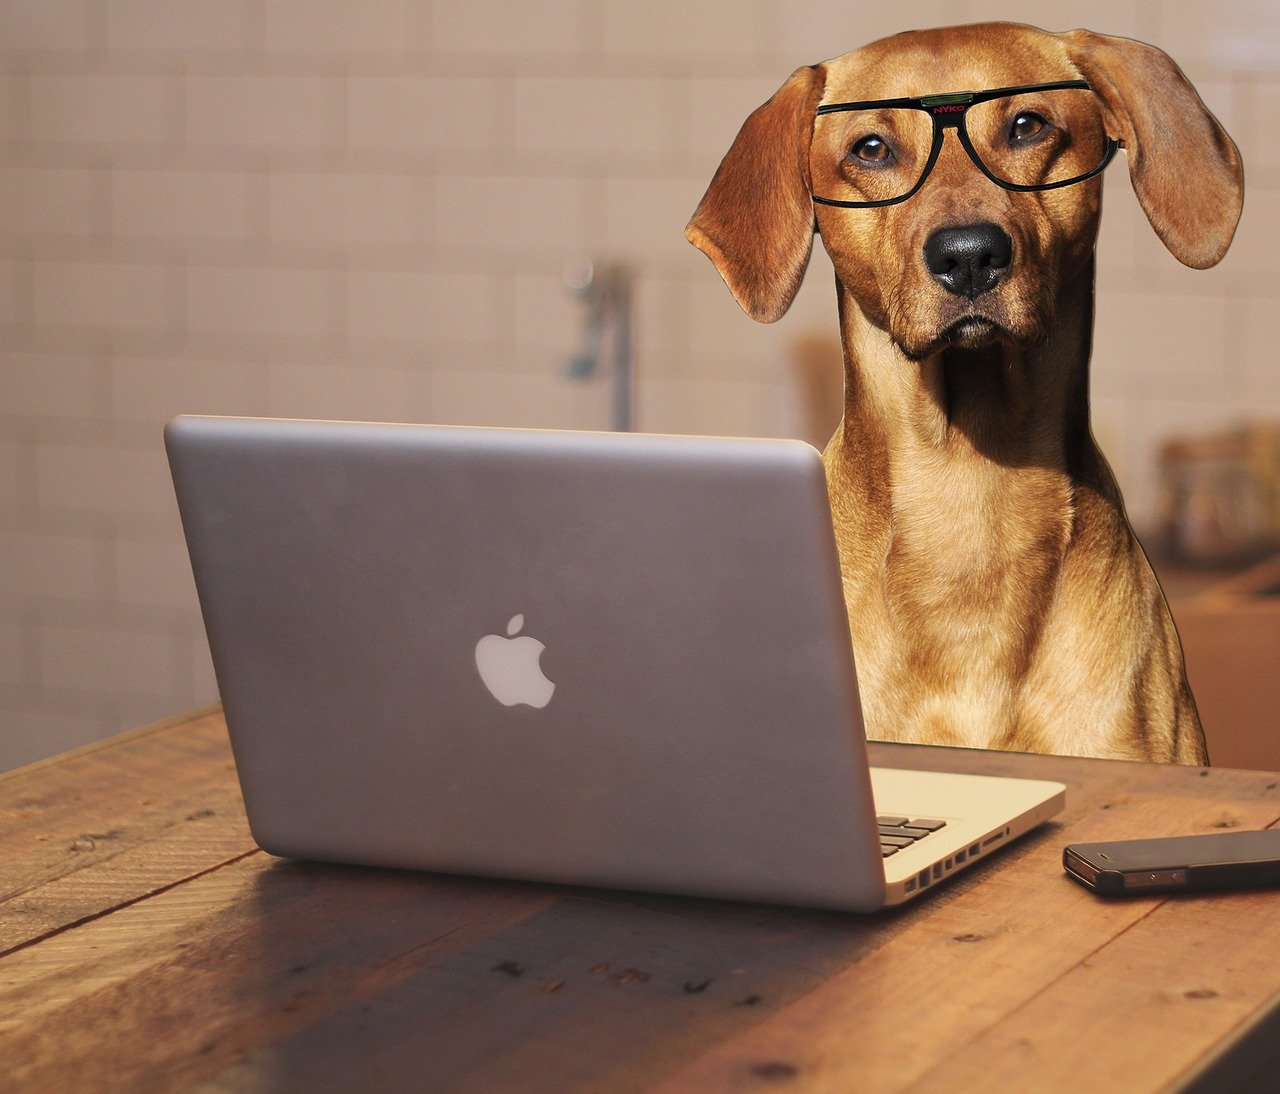 Dog with glasses sitting in front of a laptop computer on a desk.